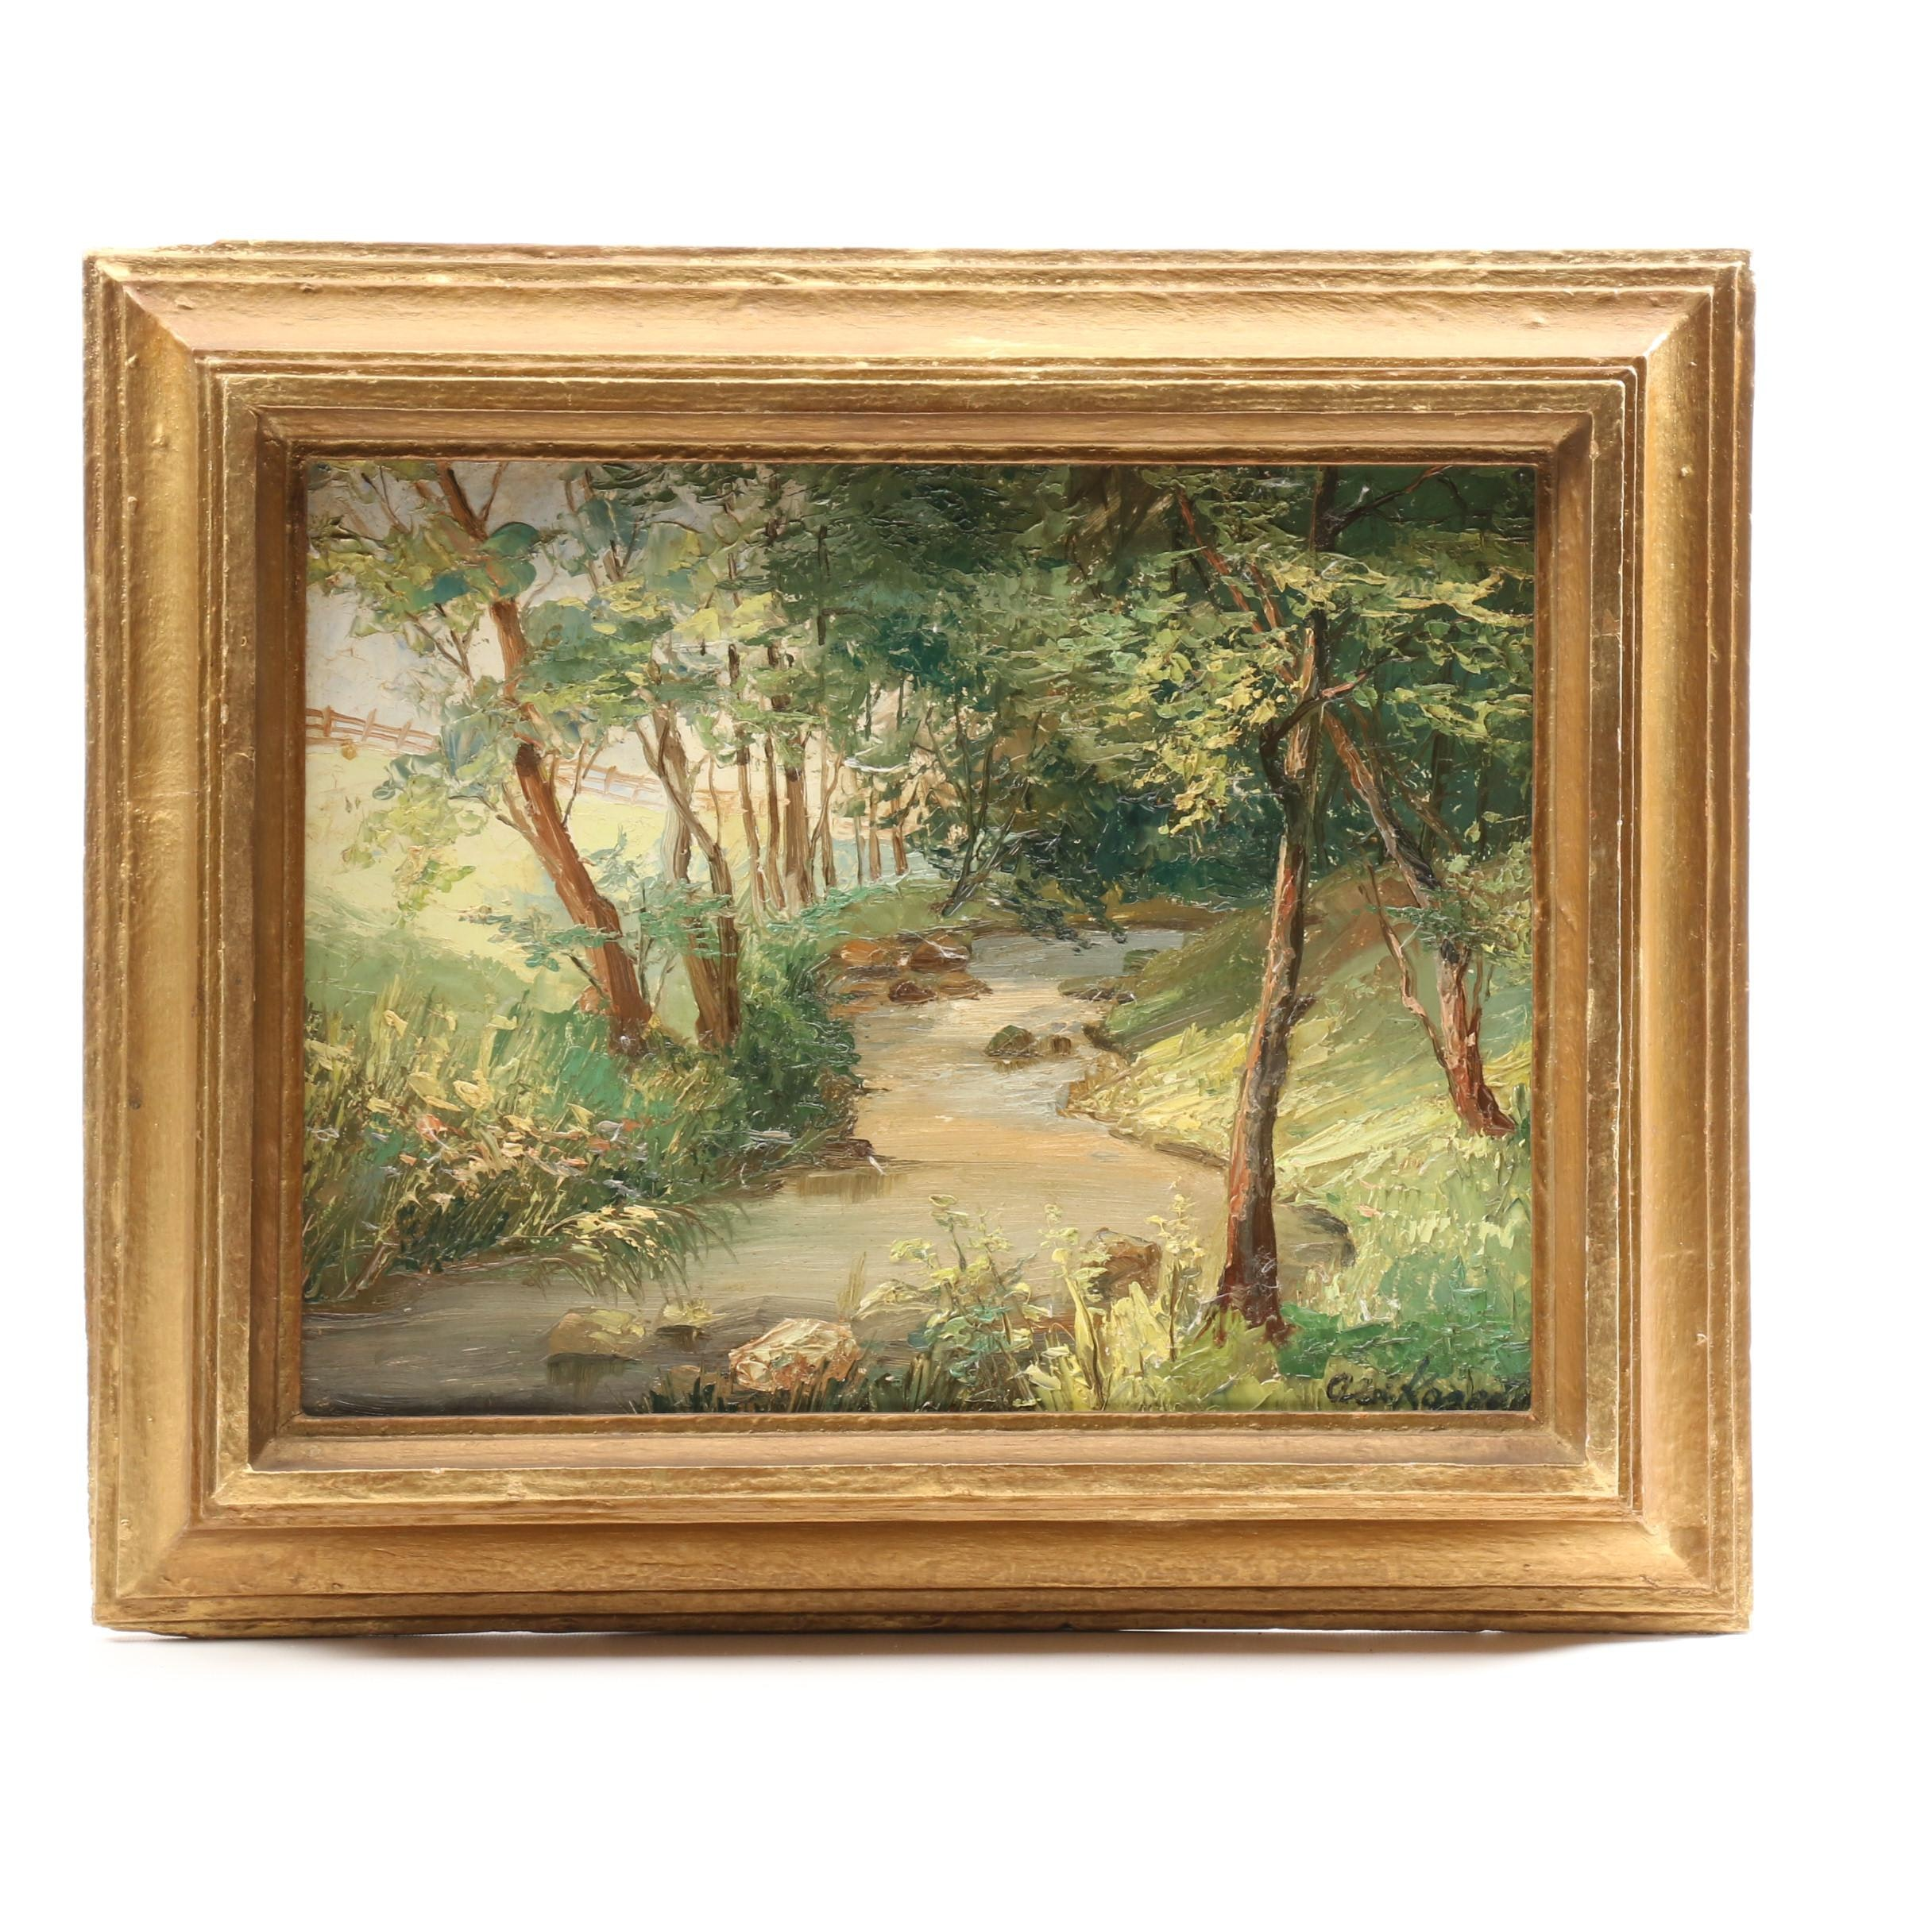 Impasto Oil Painting of Forested Landscape with Stream